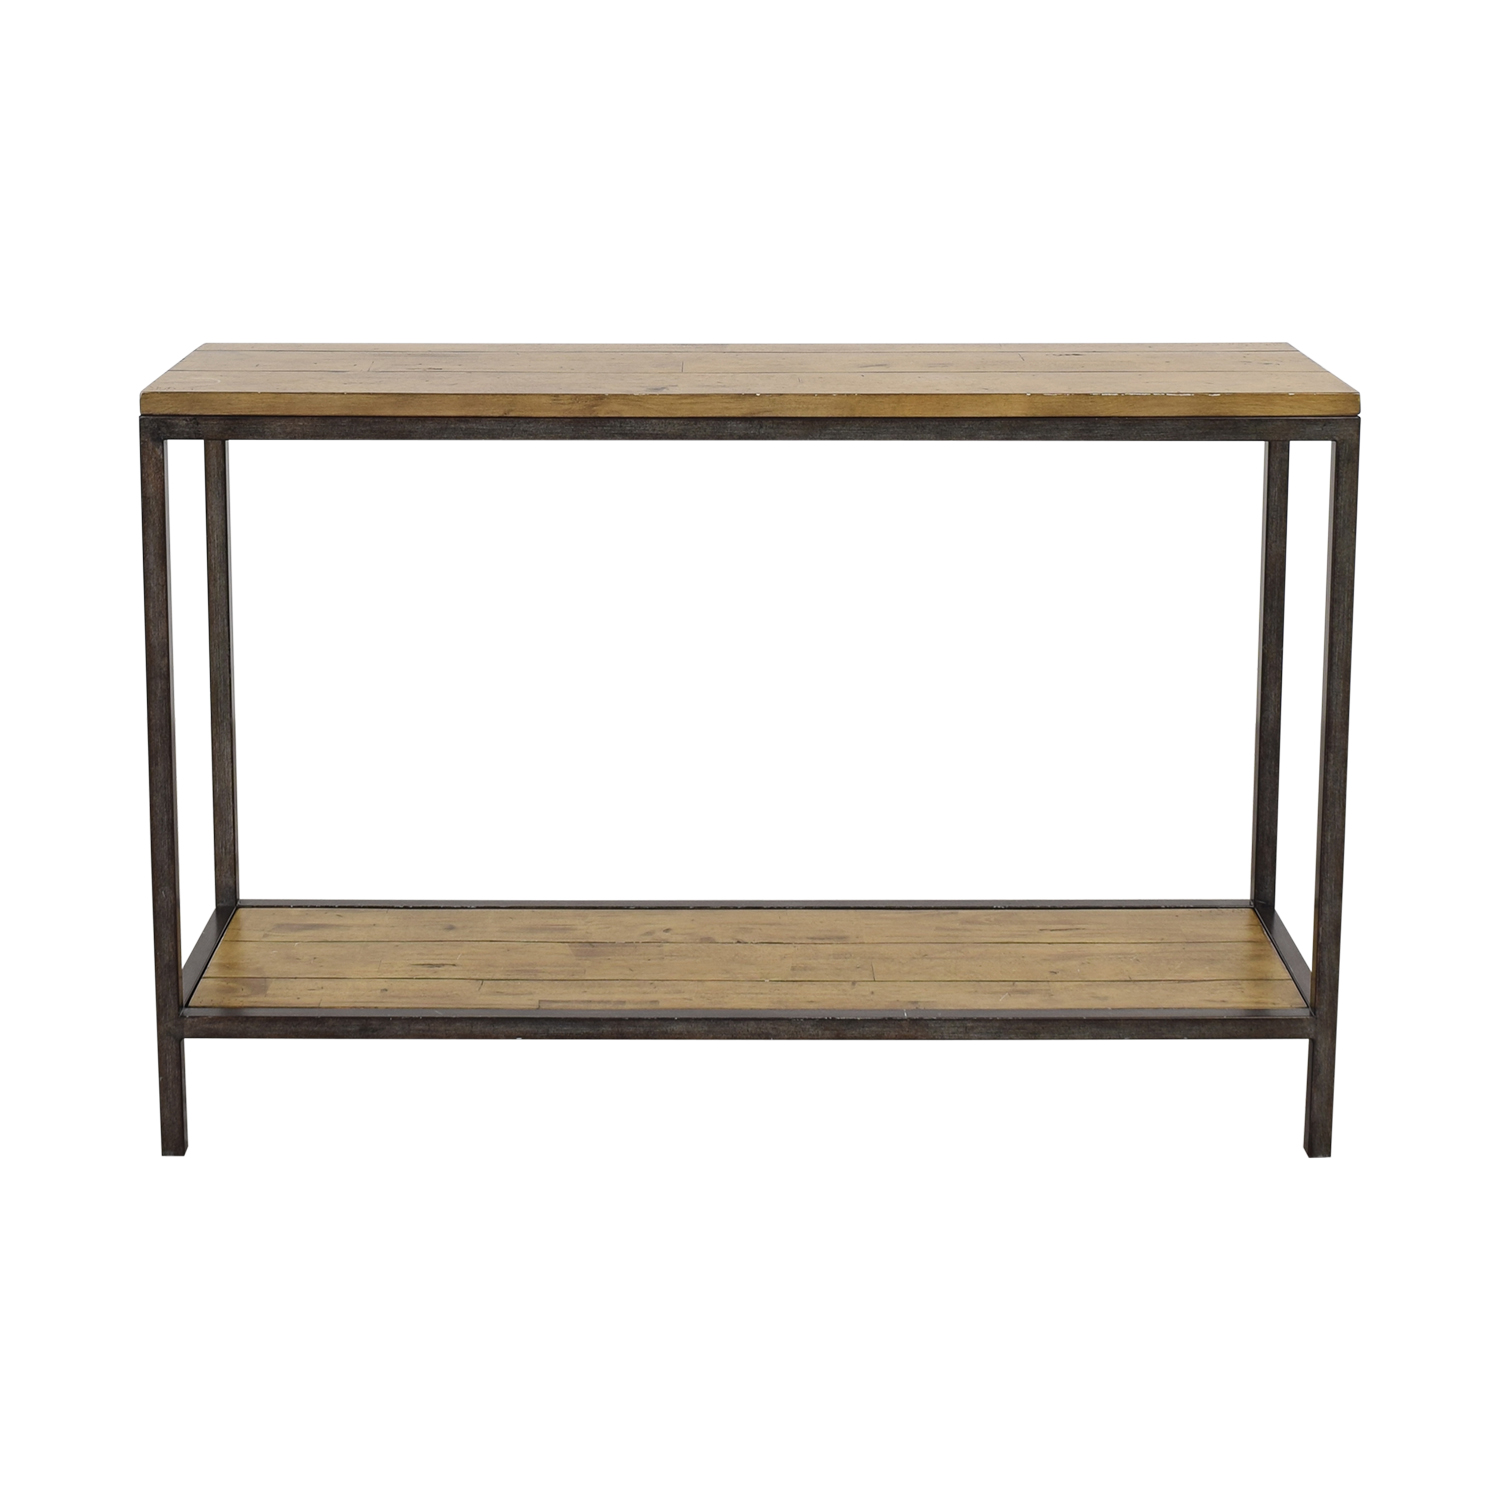 Ballard Designs Ballard Designs Durham Console Table price